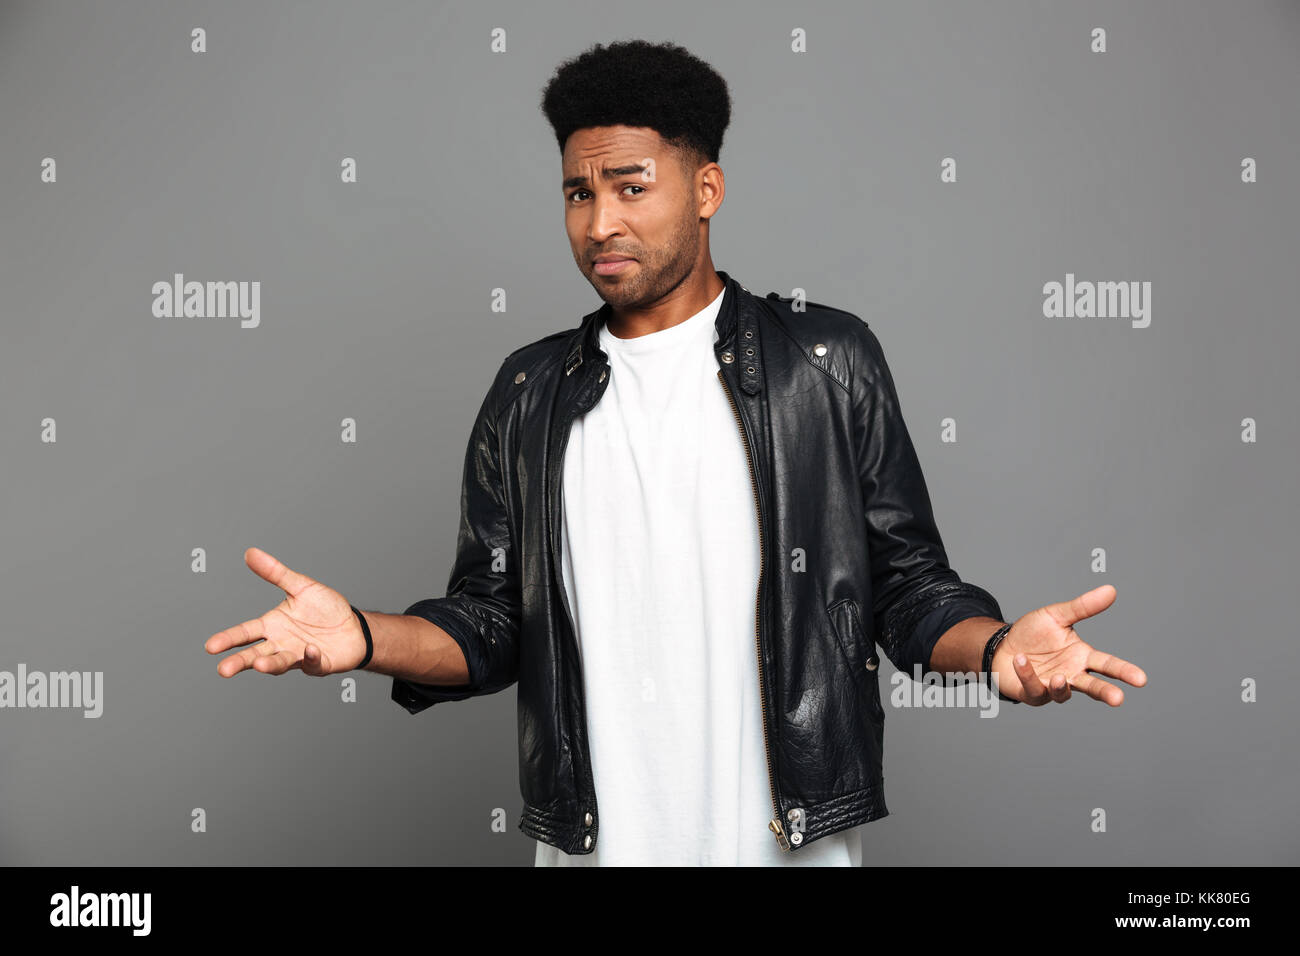 Close-up  photo of amazed afro american man in leather jacket, looking at camera, isolated over gray background - Stock Image